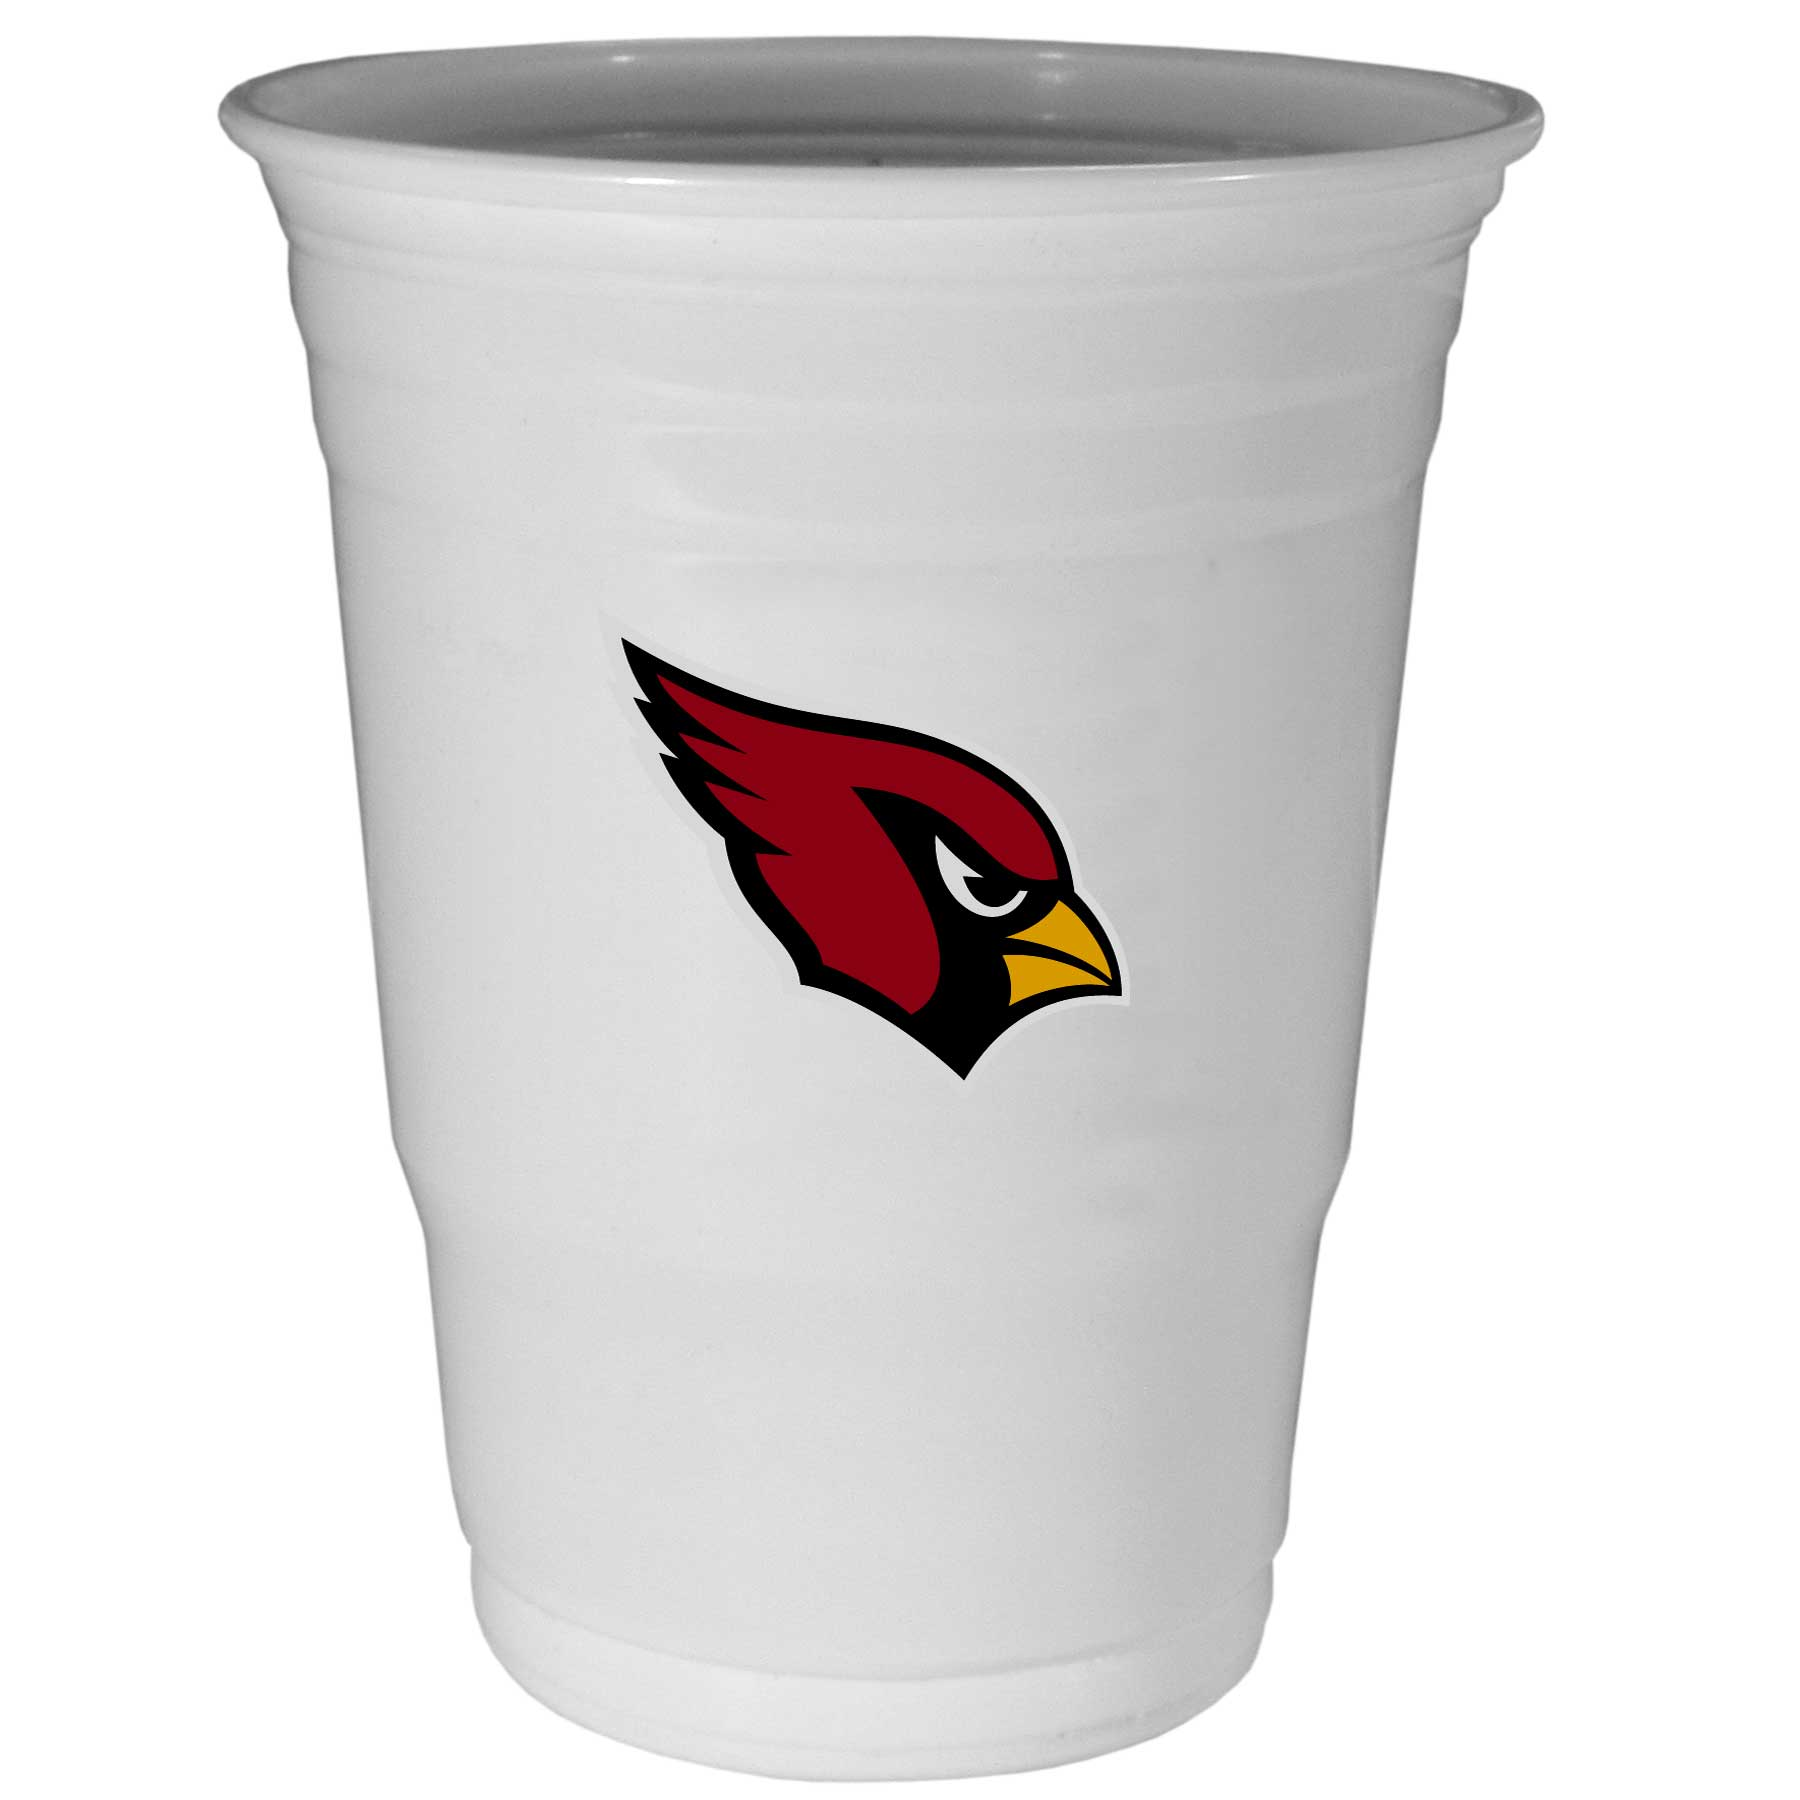 Arizona Cardinals Plastic Game Day Cups 2 sleeves of 18 (36 Cups) - Our 18 ounce game day cups are what every tailgating or backyard events needs! The cups feature a big Arizona Cardinals logo so you can show off your team pride. The popular 18 ounce size is perfect for drinks or ping pong balls! 2 sleeves of 18 cups, 36 cups in total.